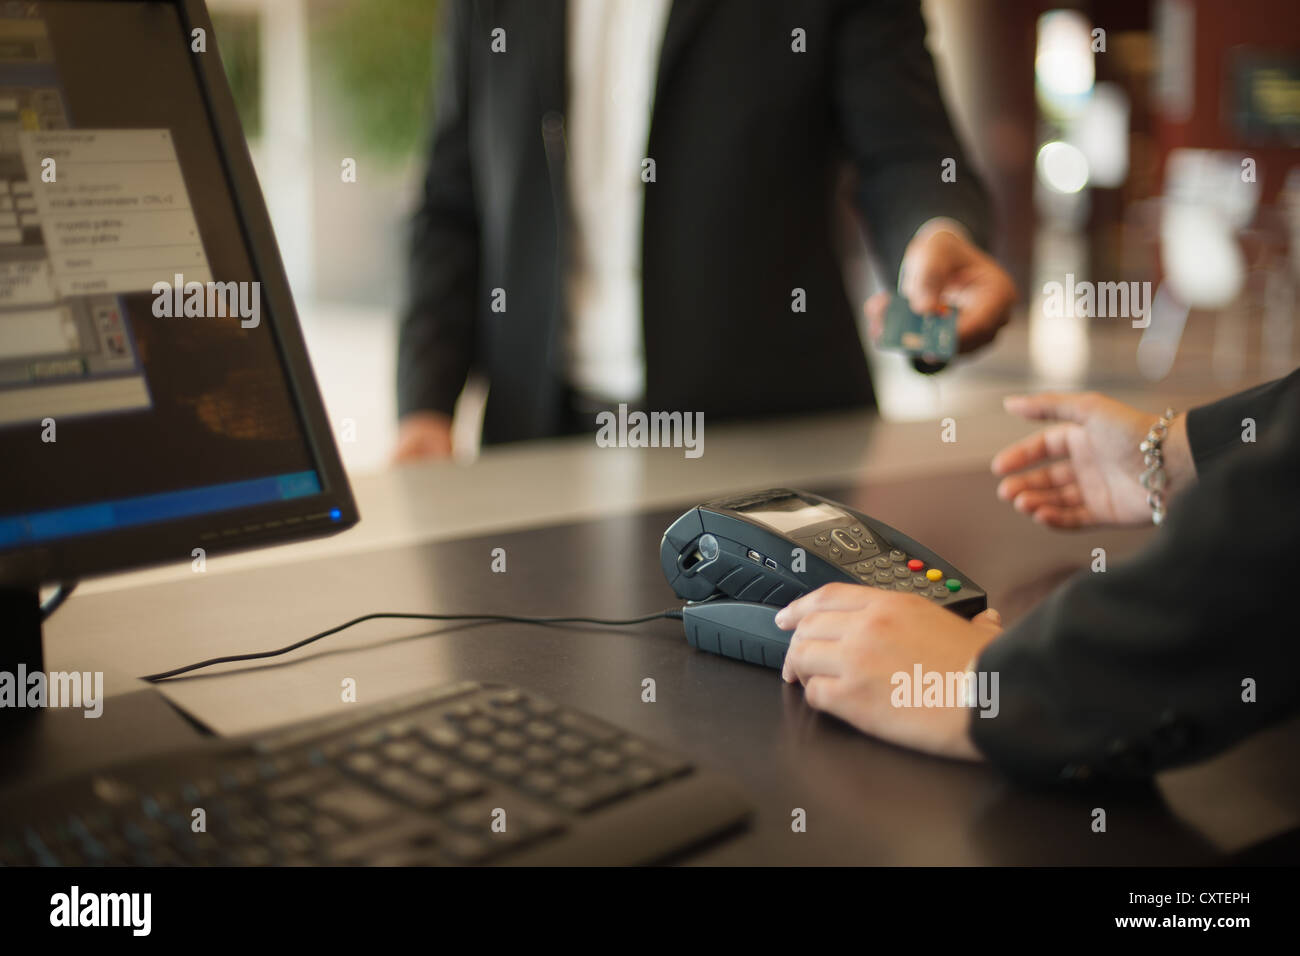 Businessman checking into hotel - Stock Image